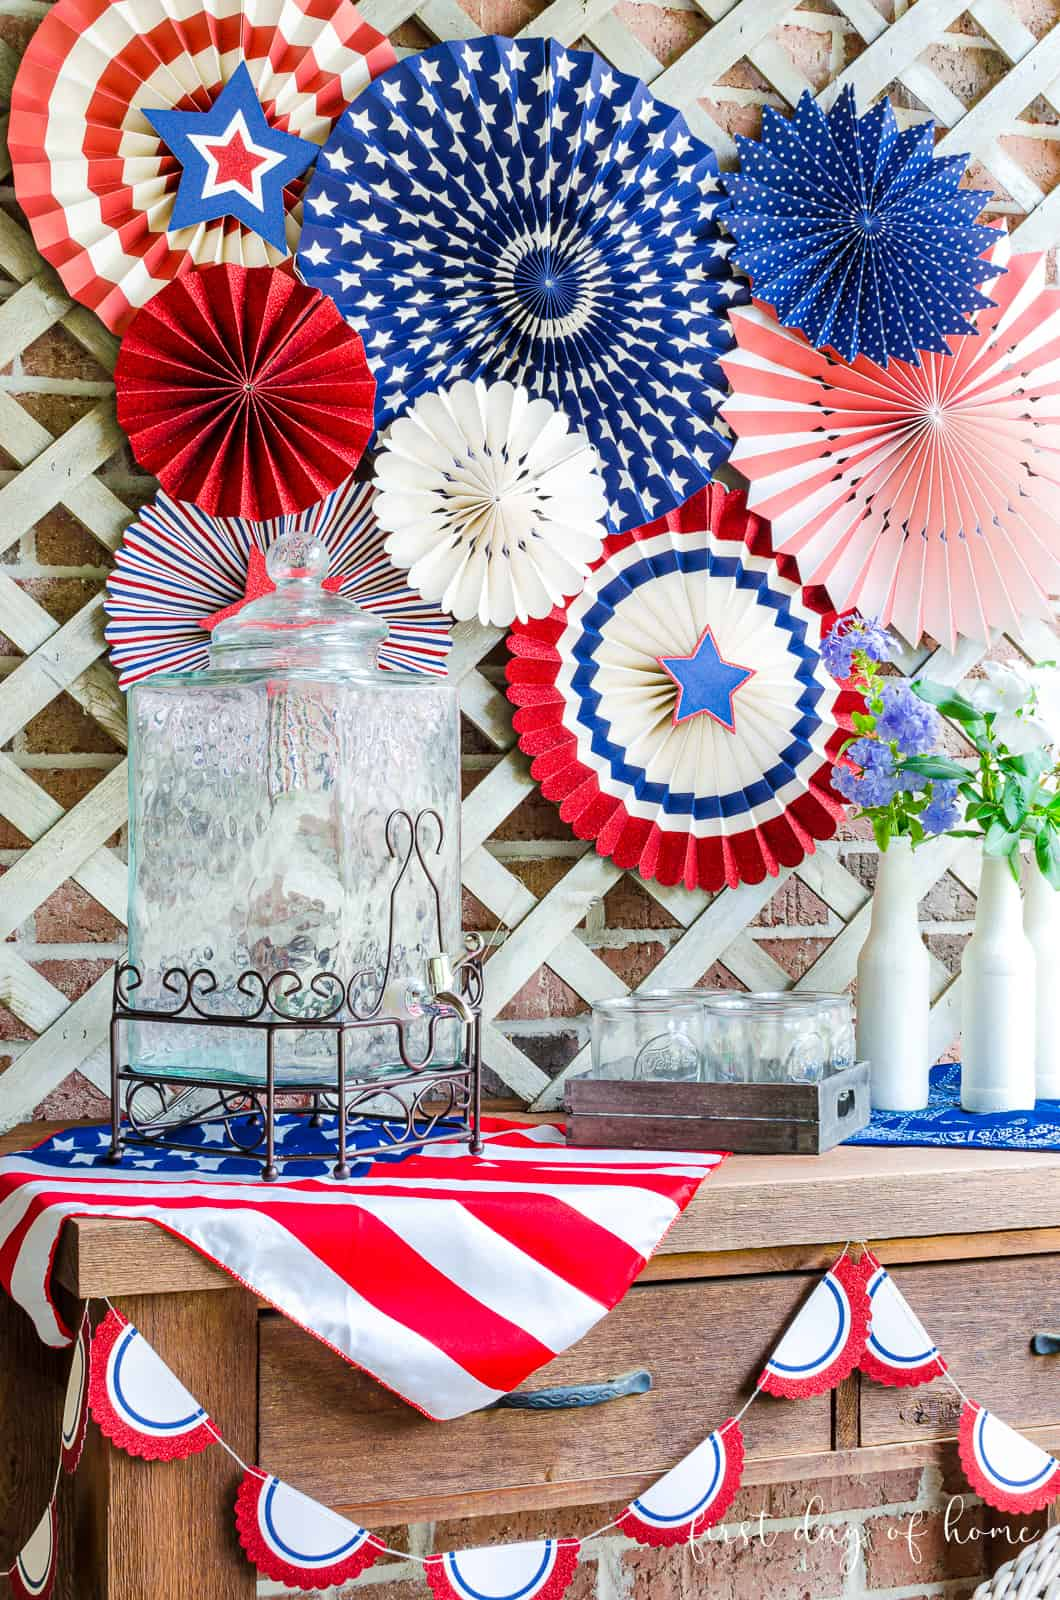 Potting table with 4th of July decorations